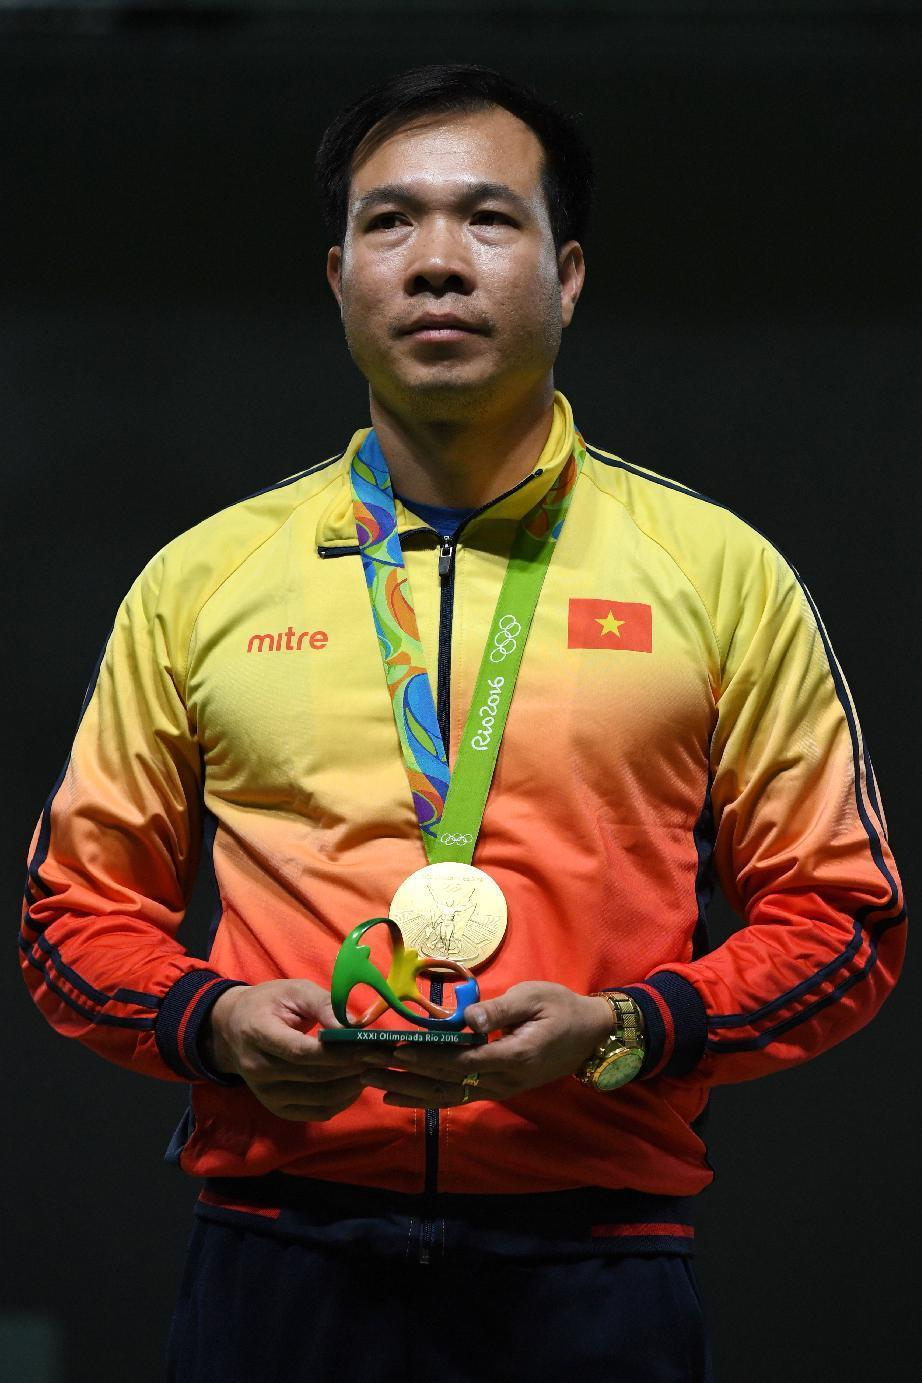 Olympics - Vietnamese rejoice at first Olympic gold